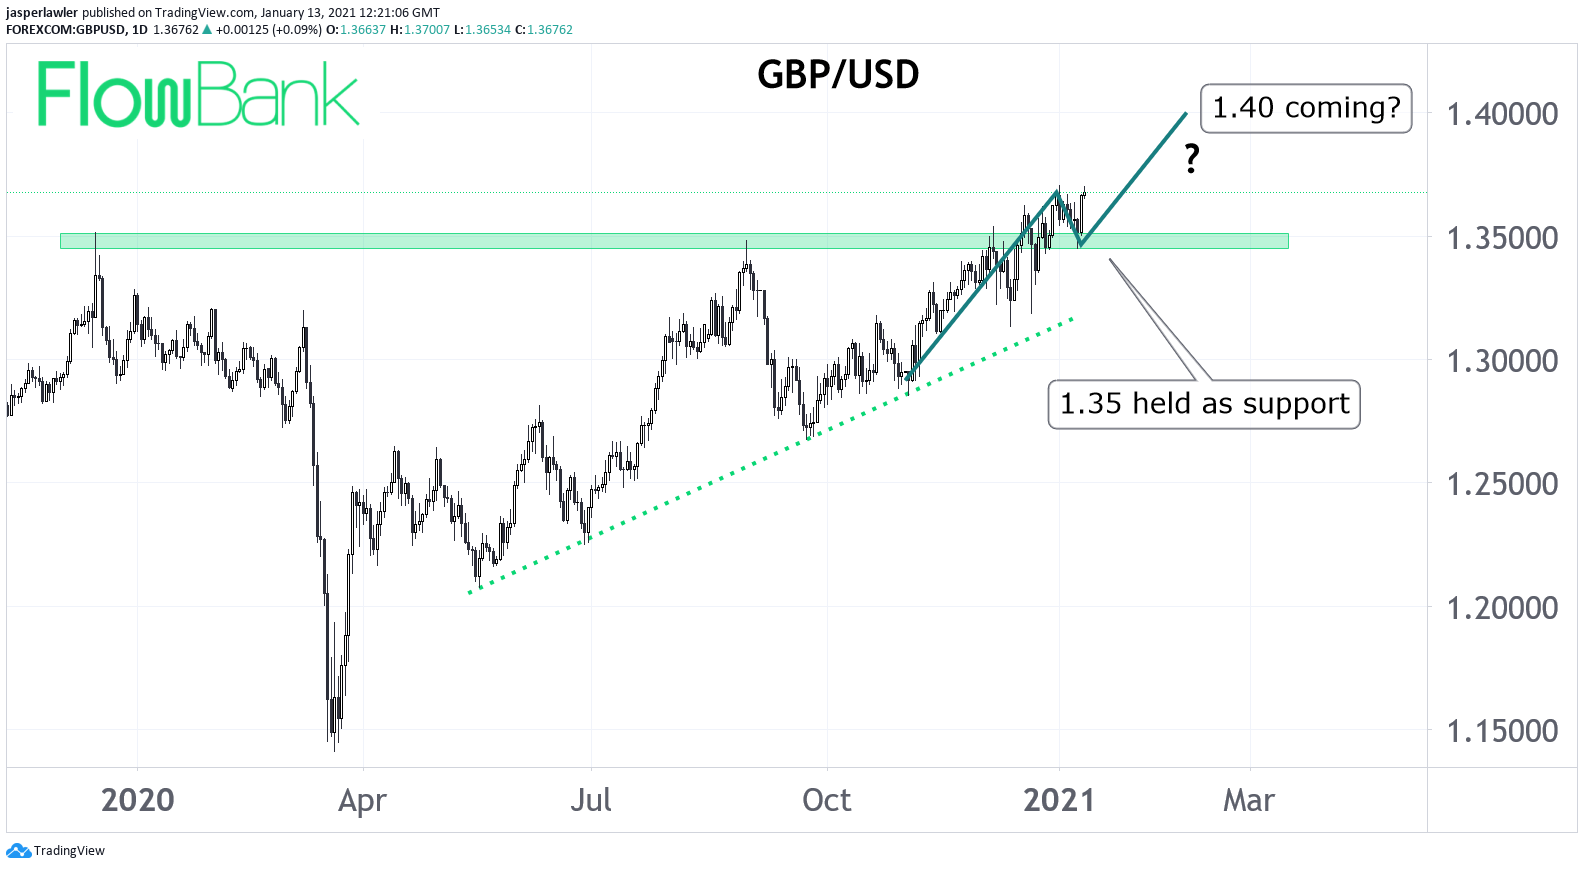 Sterling to capitalize on dollar weakness? GBP/USD